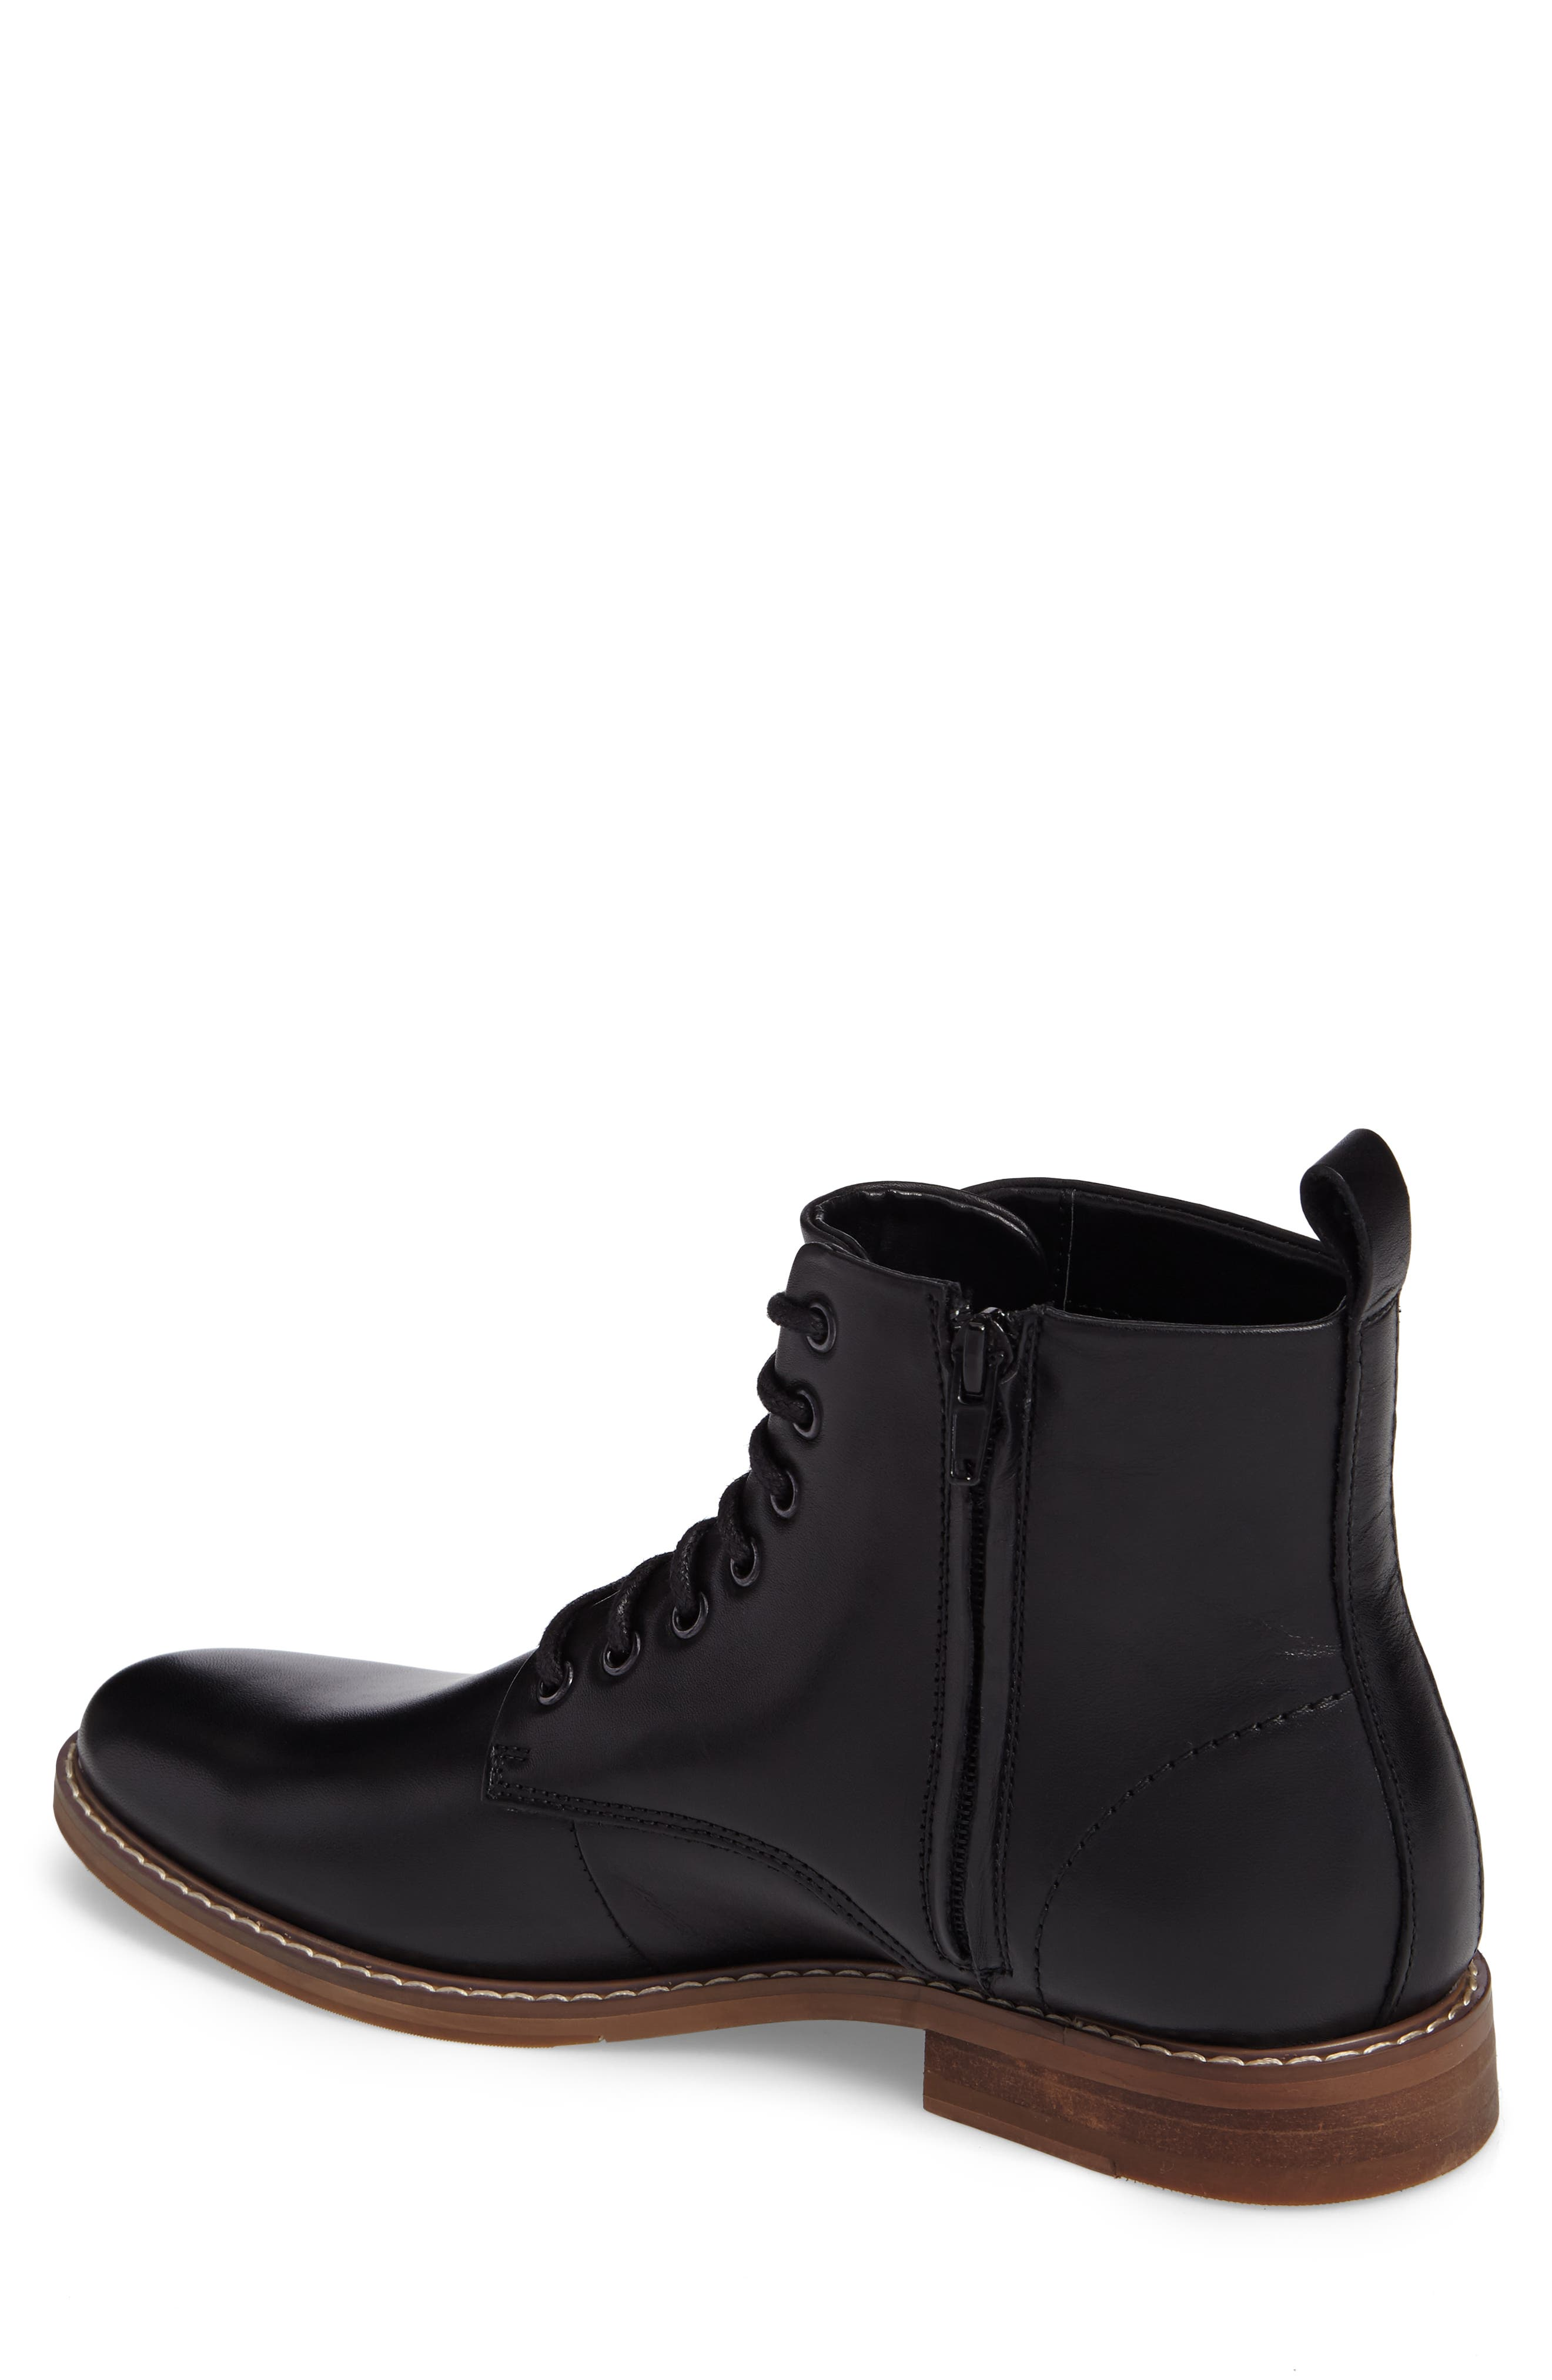 Albany Plain Toe Boot,                             Alternate thumbnail 2, color,                             BLACK LEATHER